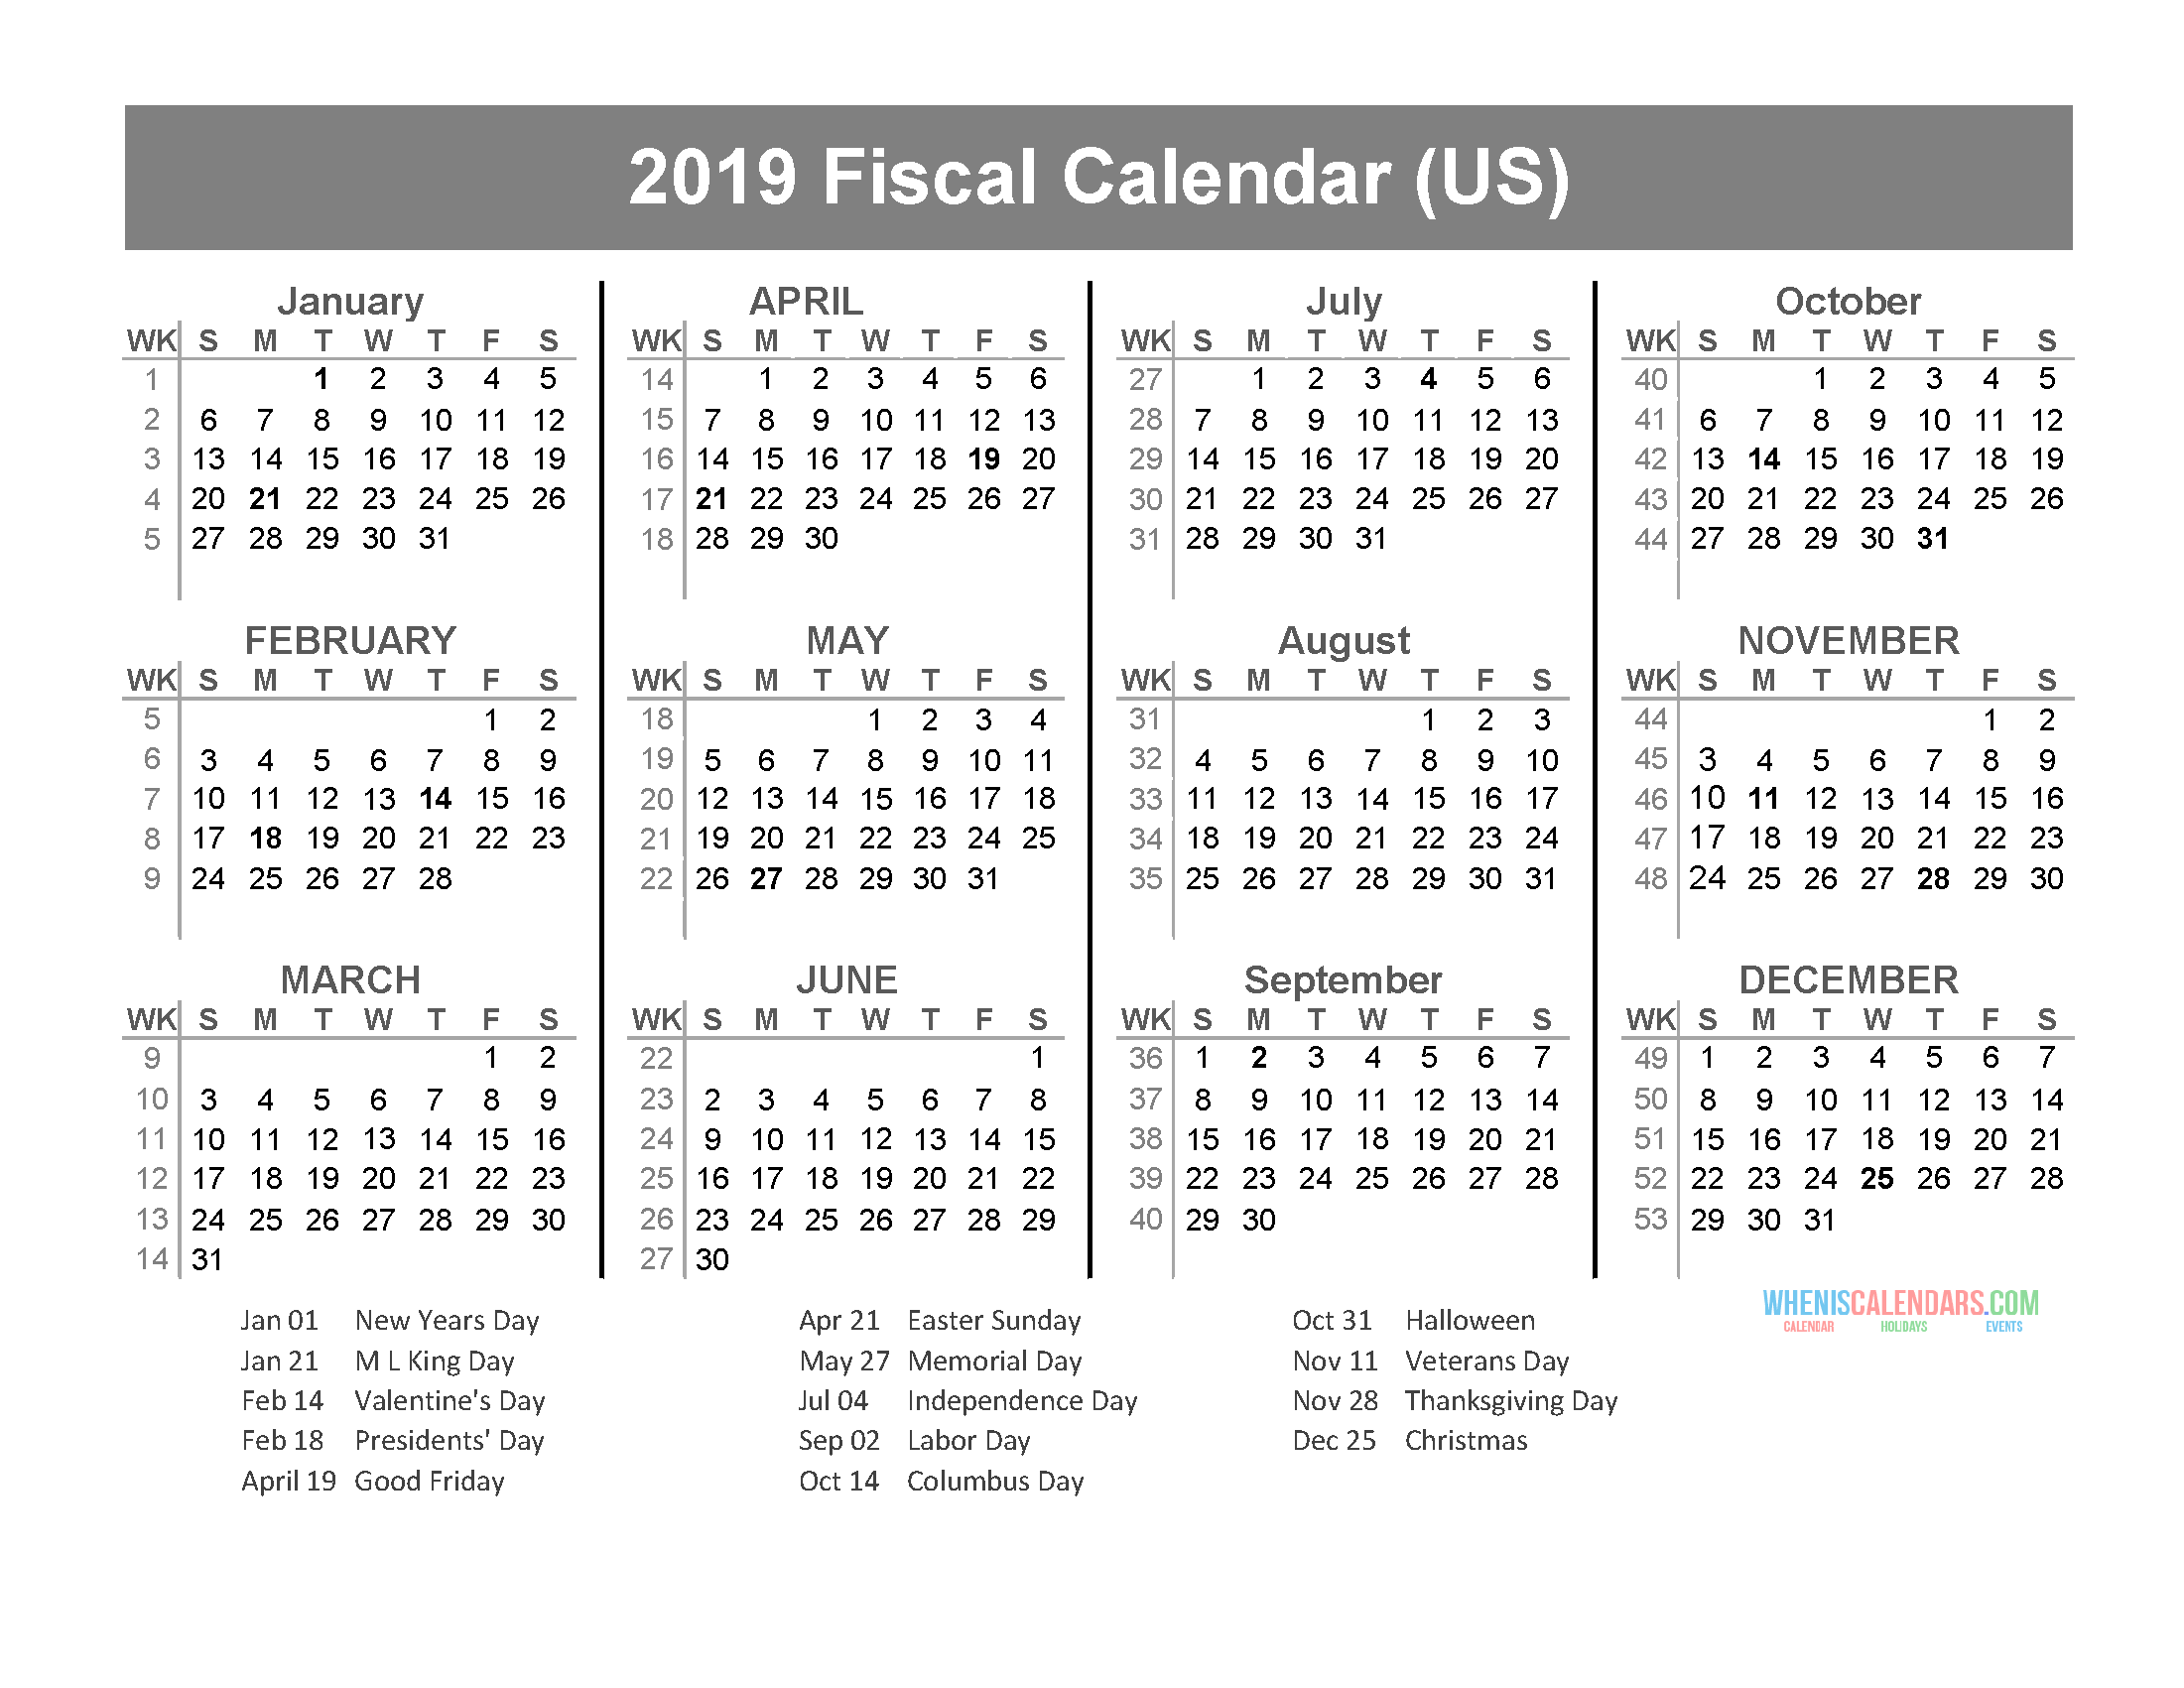 fiscal year 2019 calendar with us holidays  january to